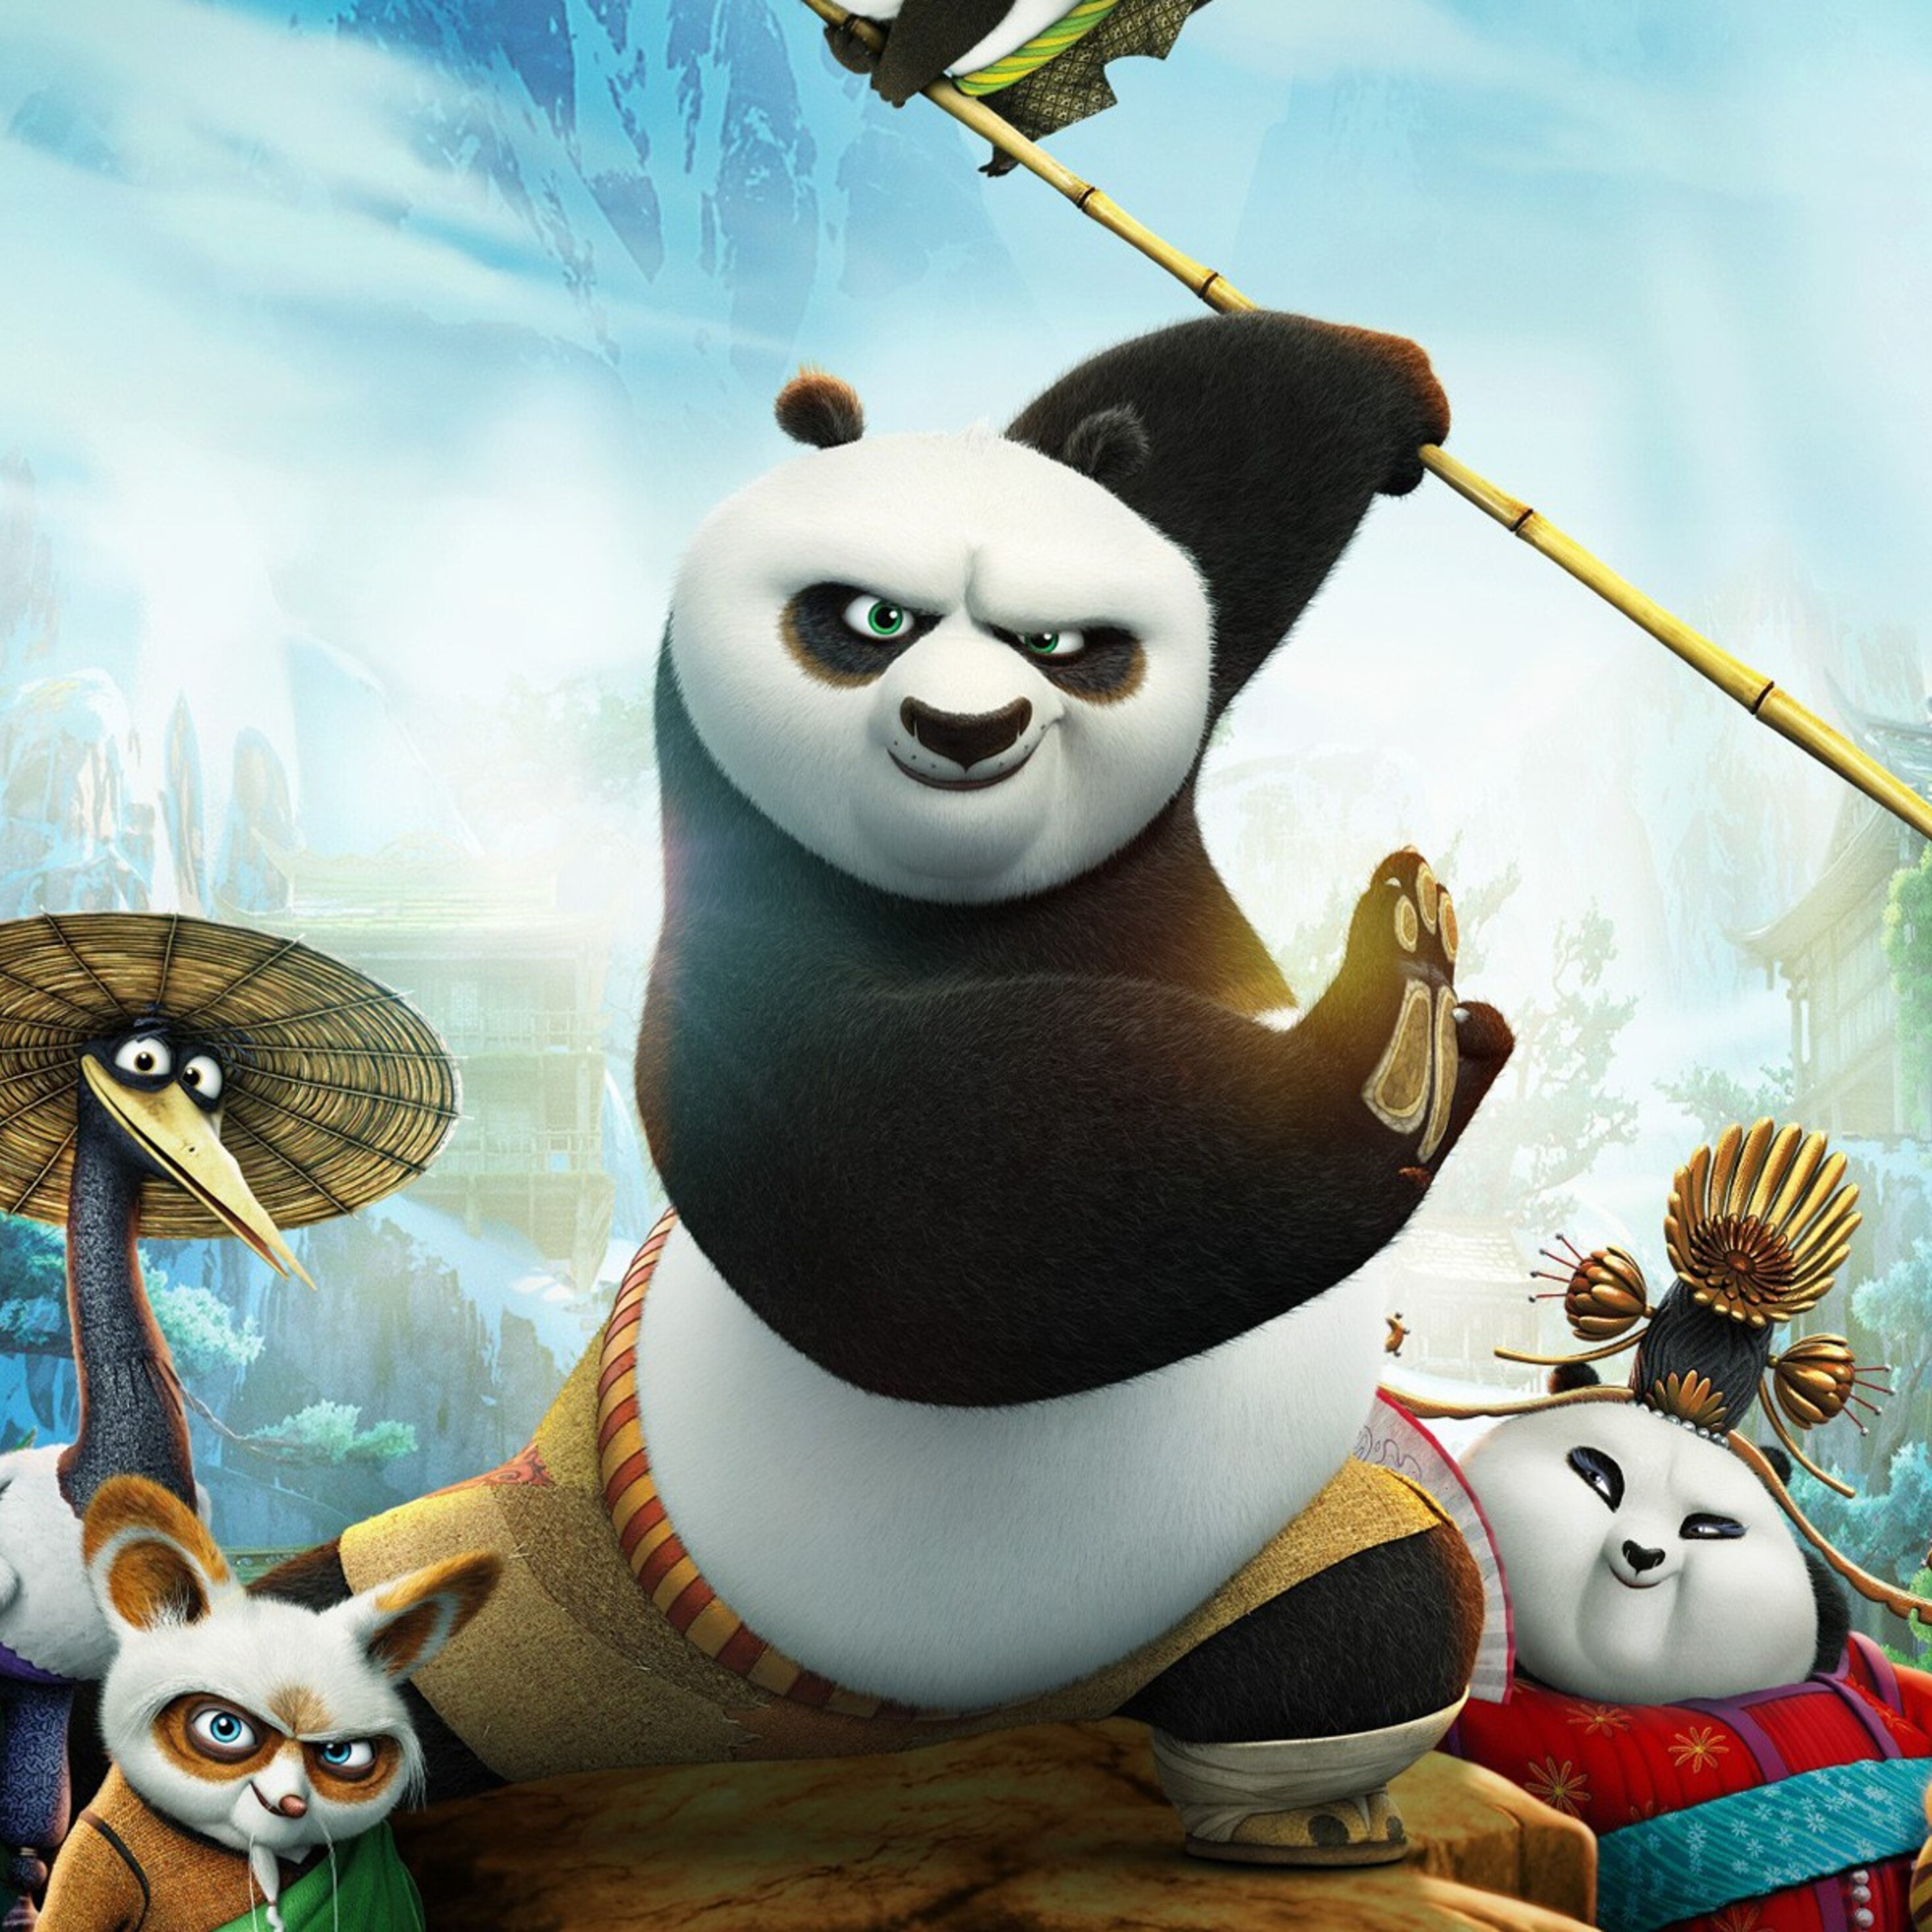 2932x2932 kung fu panda 3 movie ipad pro retina display hd 4k